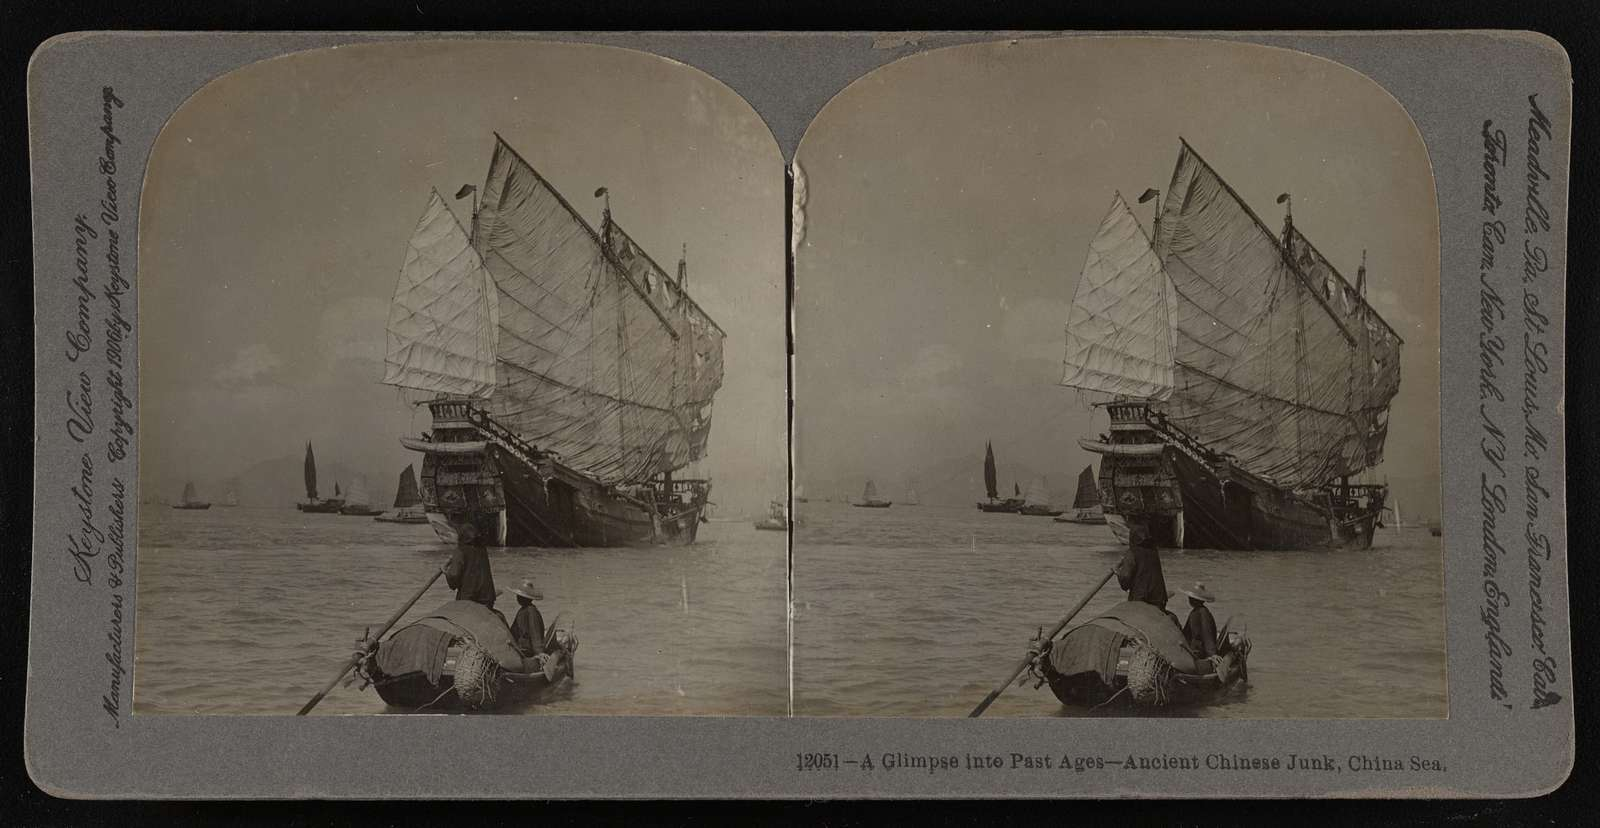 A glimpse into past ages--ancient Chinese junk, China Sea